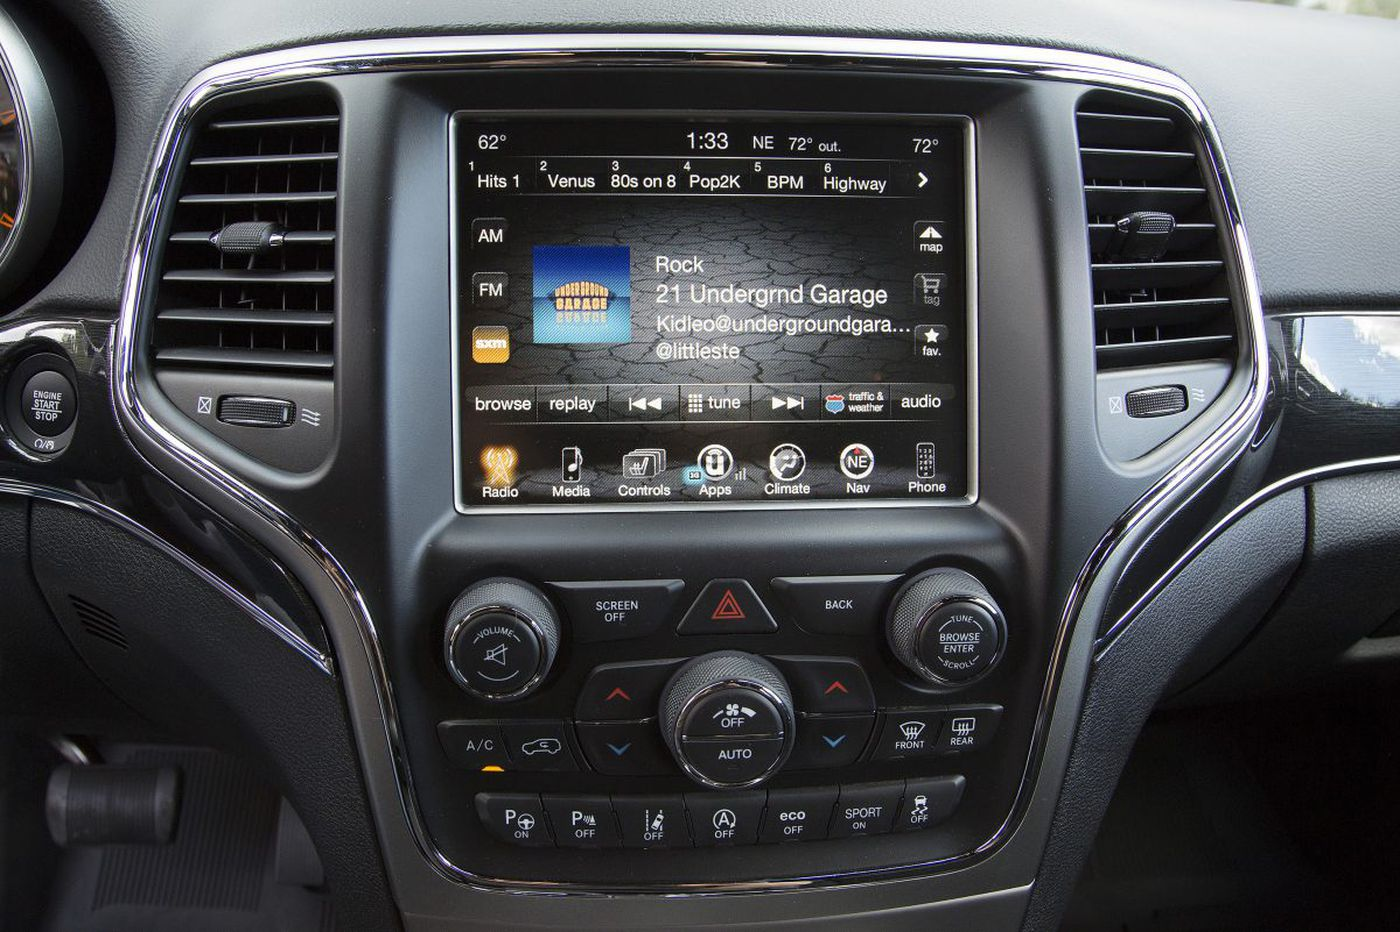 Complex infotainment systems are putting driver lives at risk, says AAA